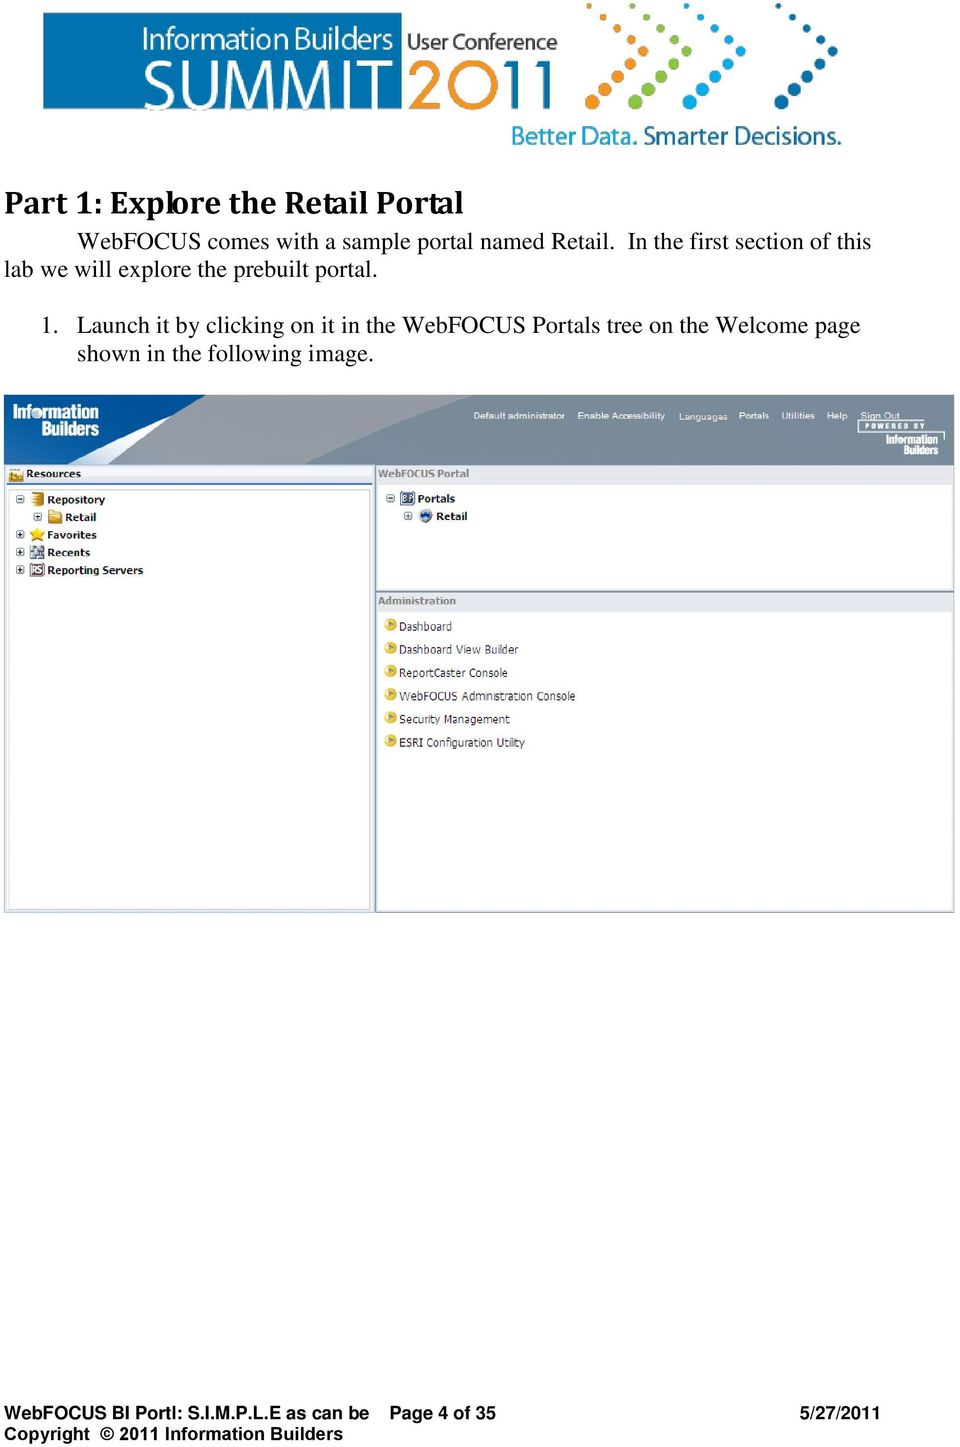 Launch it by clicking on it in the WebFOCUS Portals tree on the Welcome page